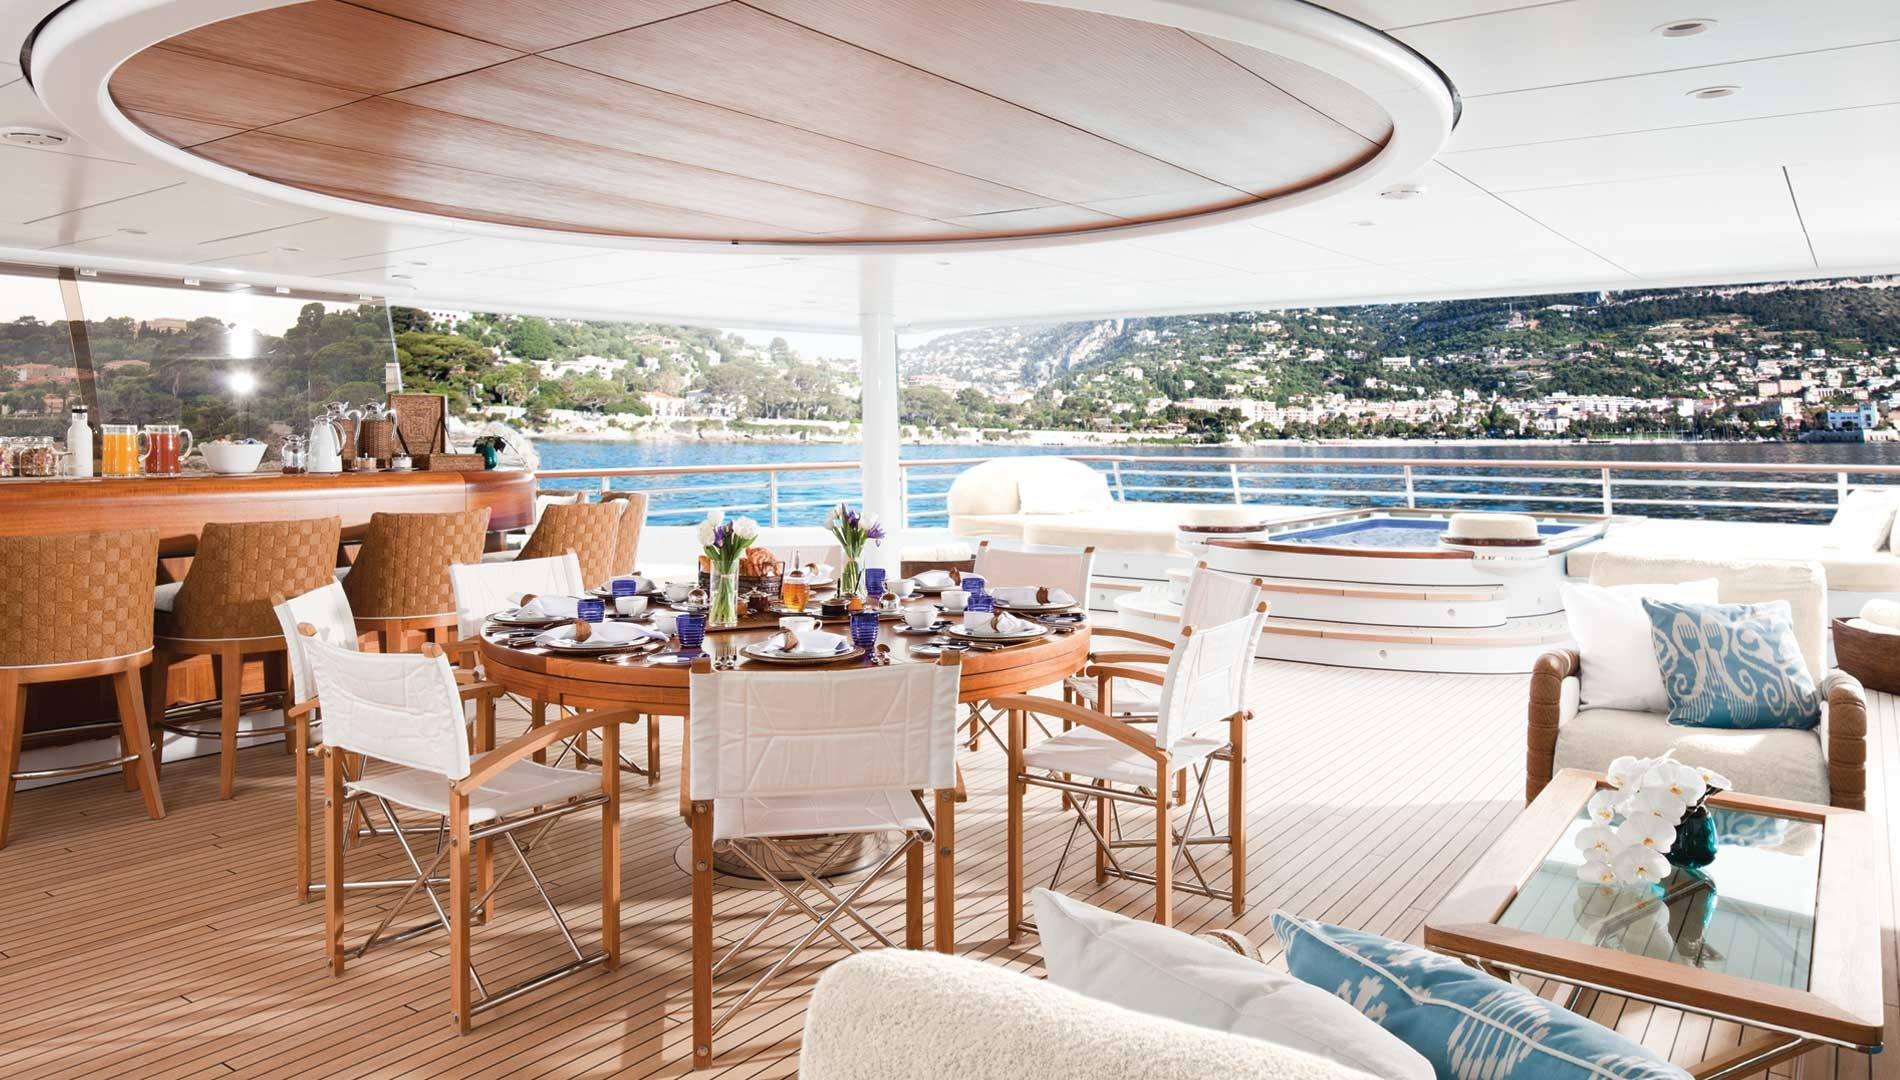 Sun deck with Jacuzzi, bar and seating